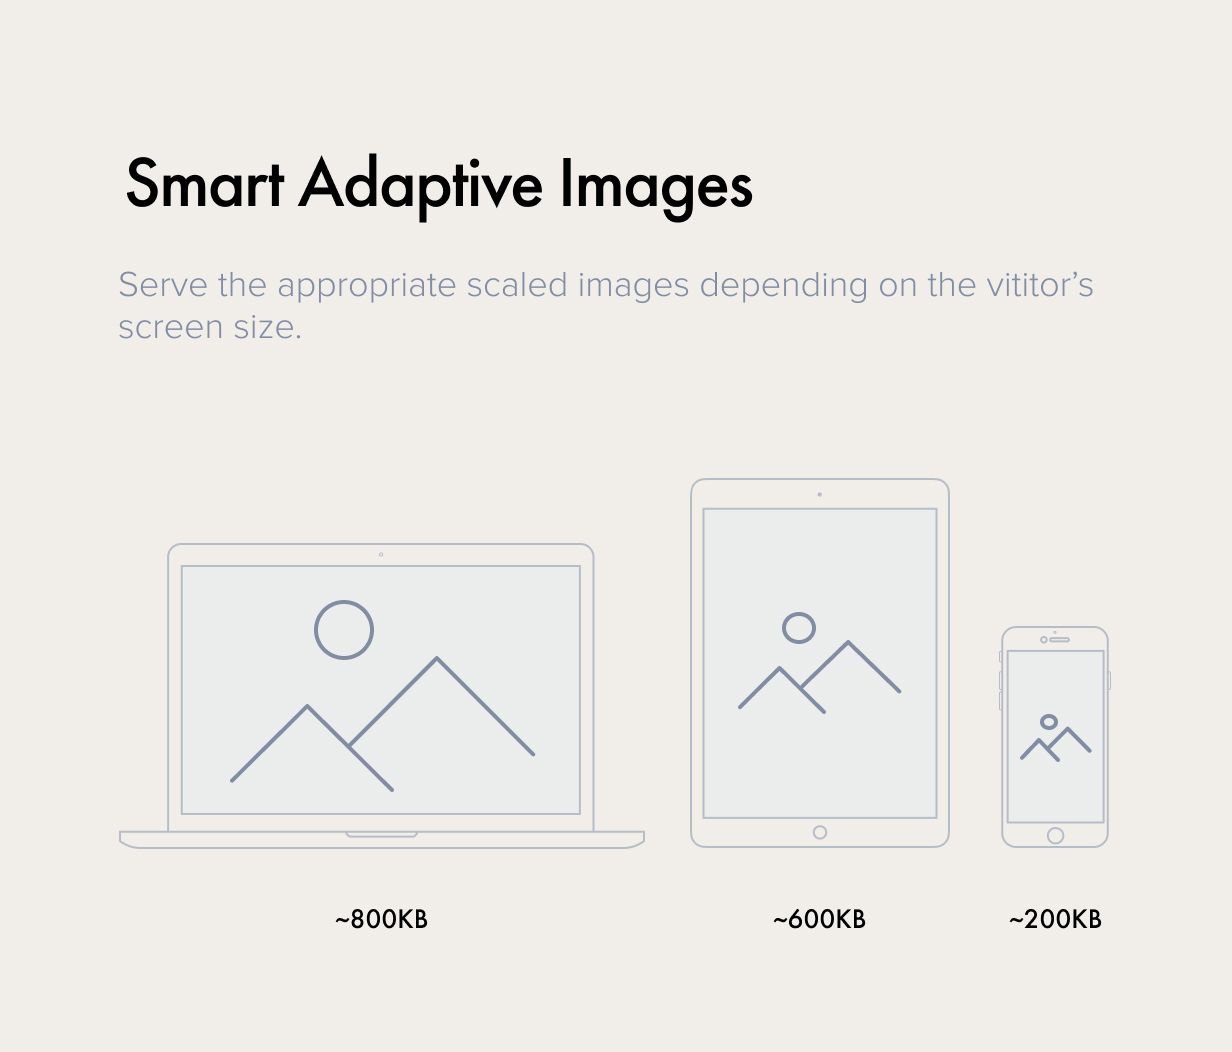 adaptive images - Authentic - Lifestyle Blog & Magazine WordPress Theme